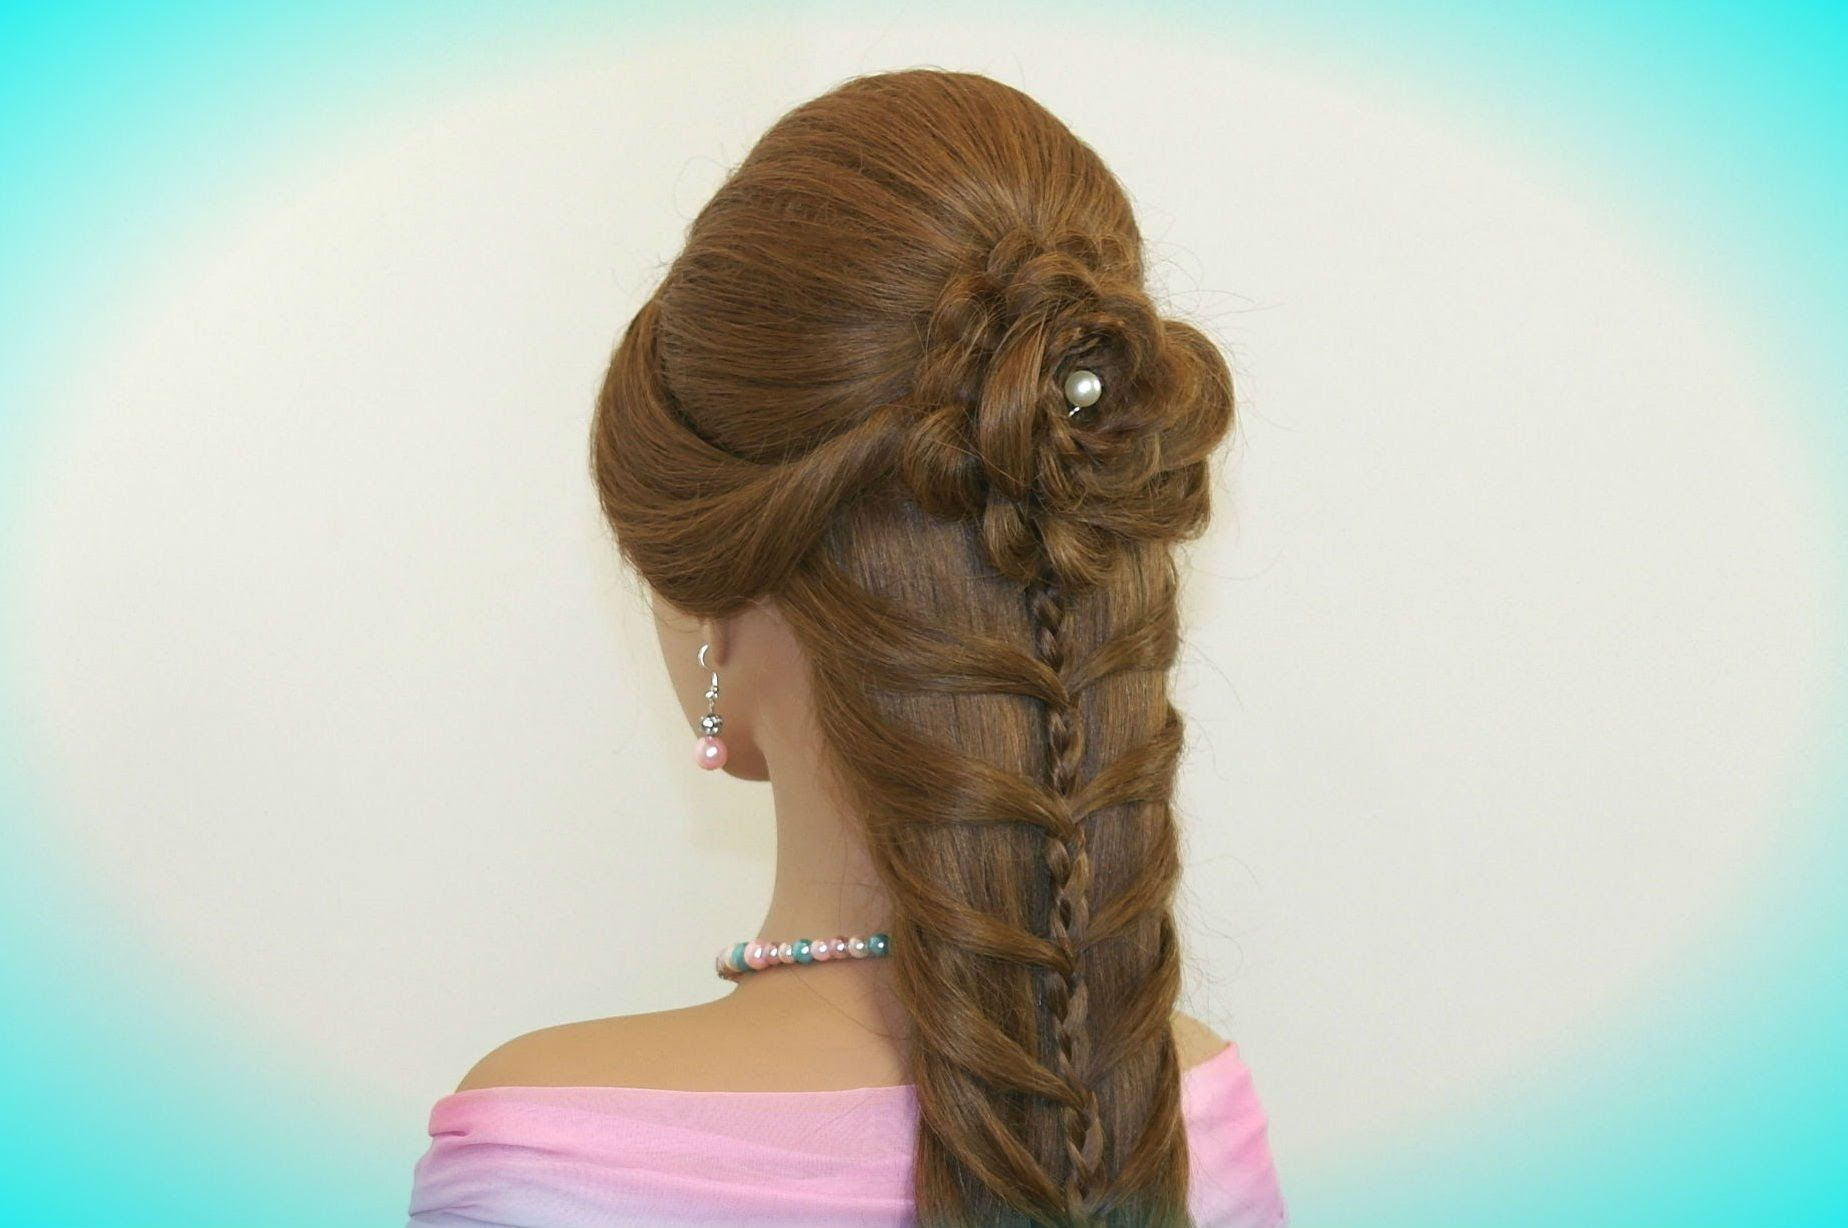 Cute Prom Braided Hairstyles For Long Hair Hair Made Rose Braids For Long Hair Hair Styles Braided Hairstyles